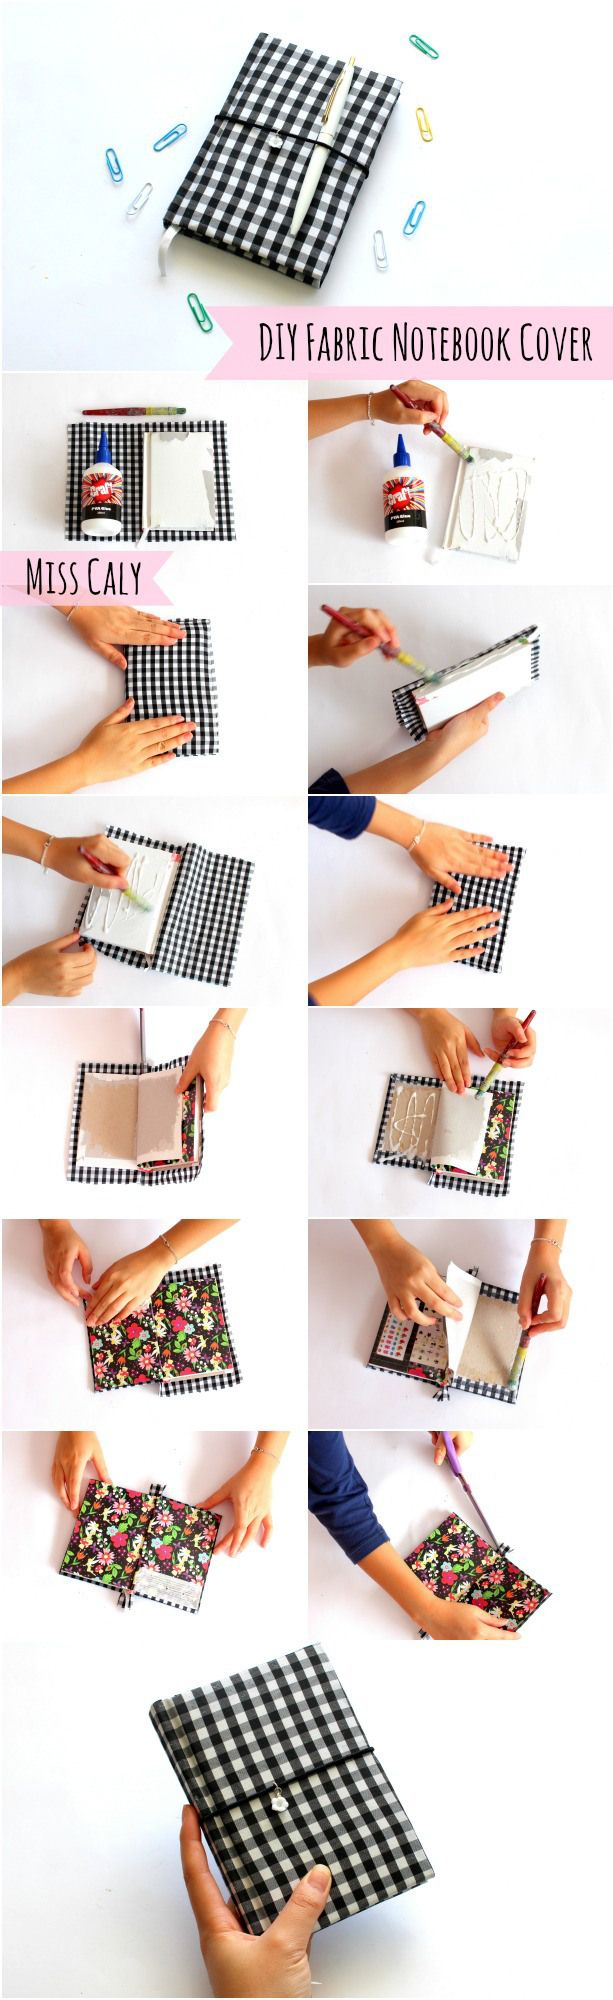 10 creative diy book cover ideas - Diy Personalised Fabric Notebook Cover With Pictures